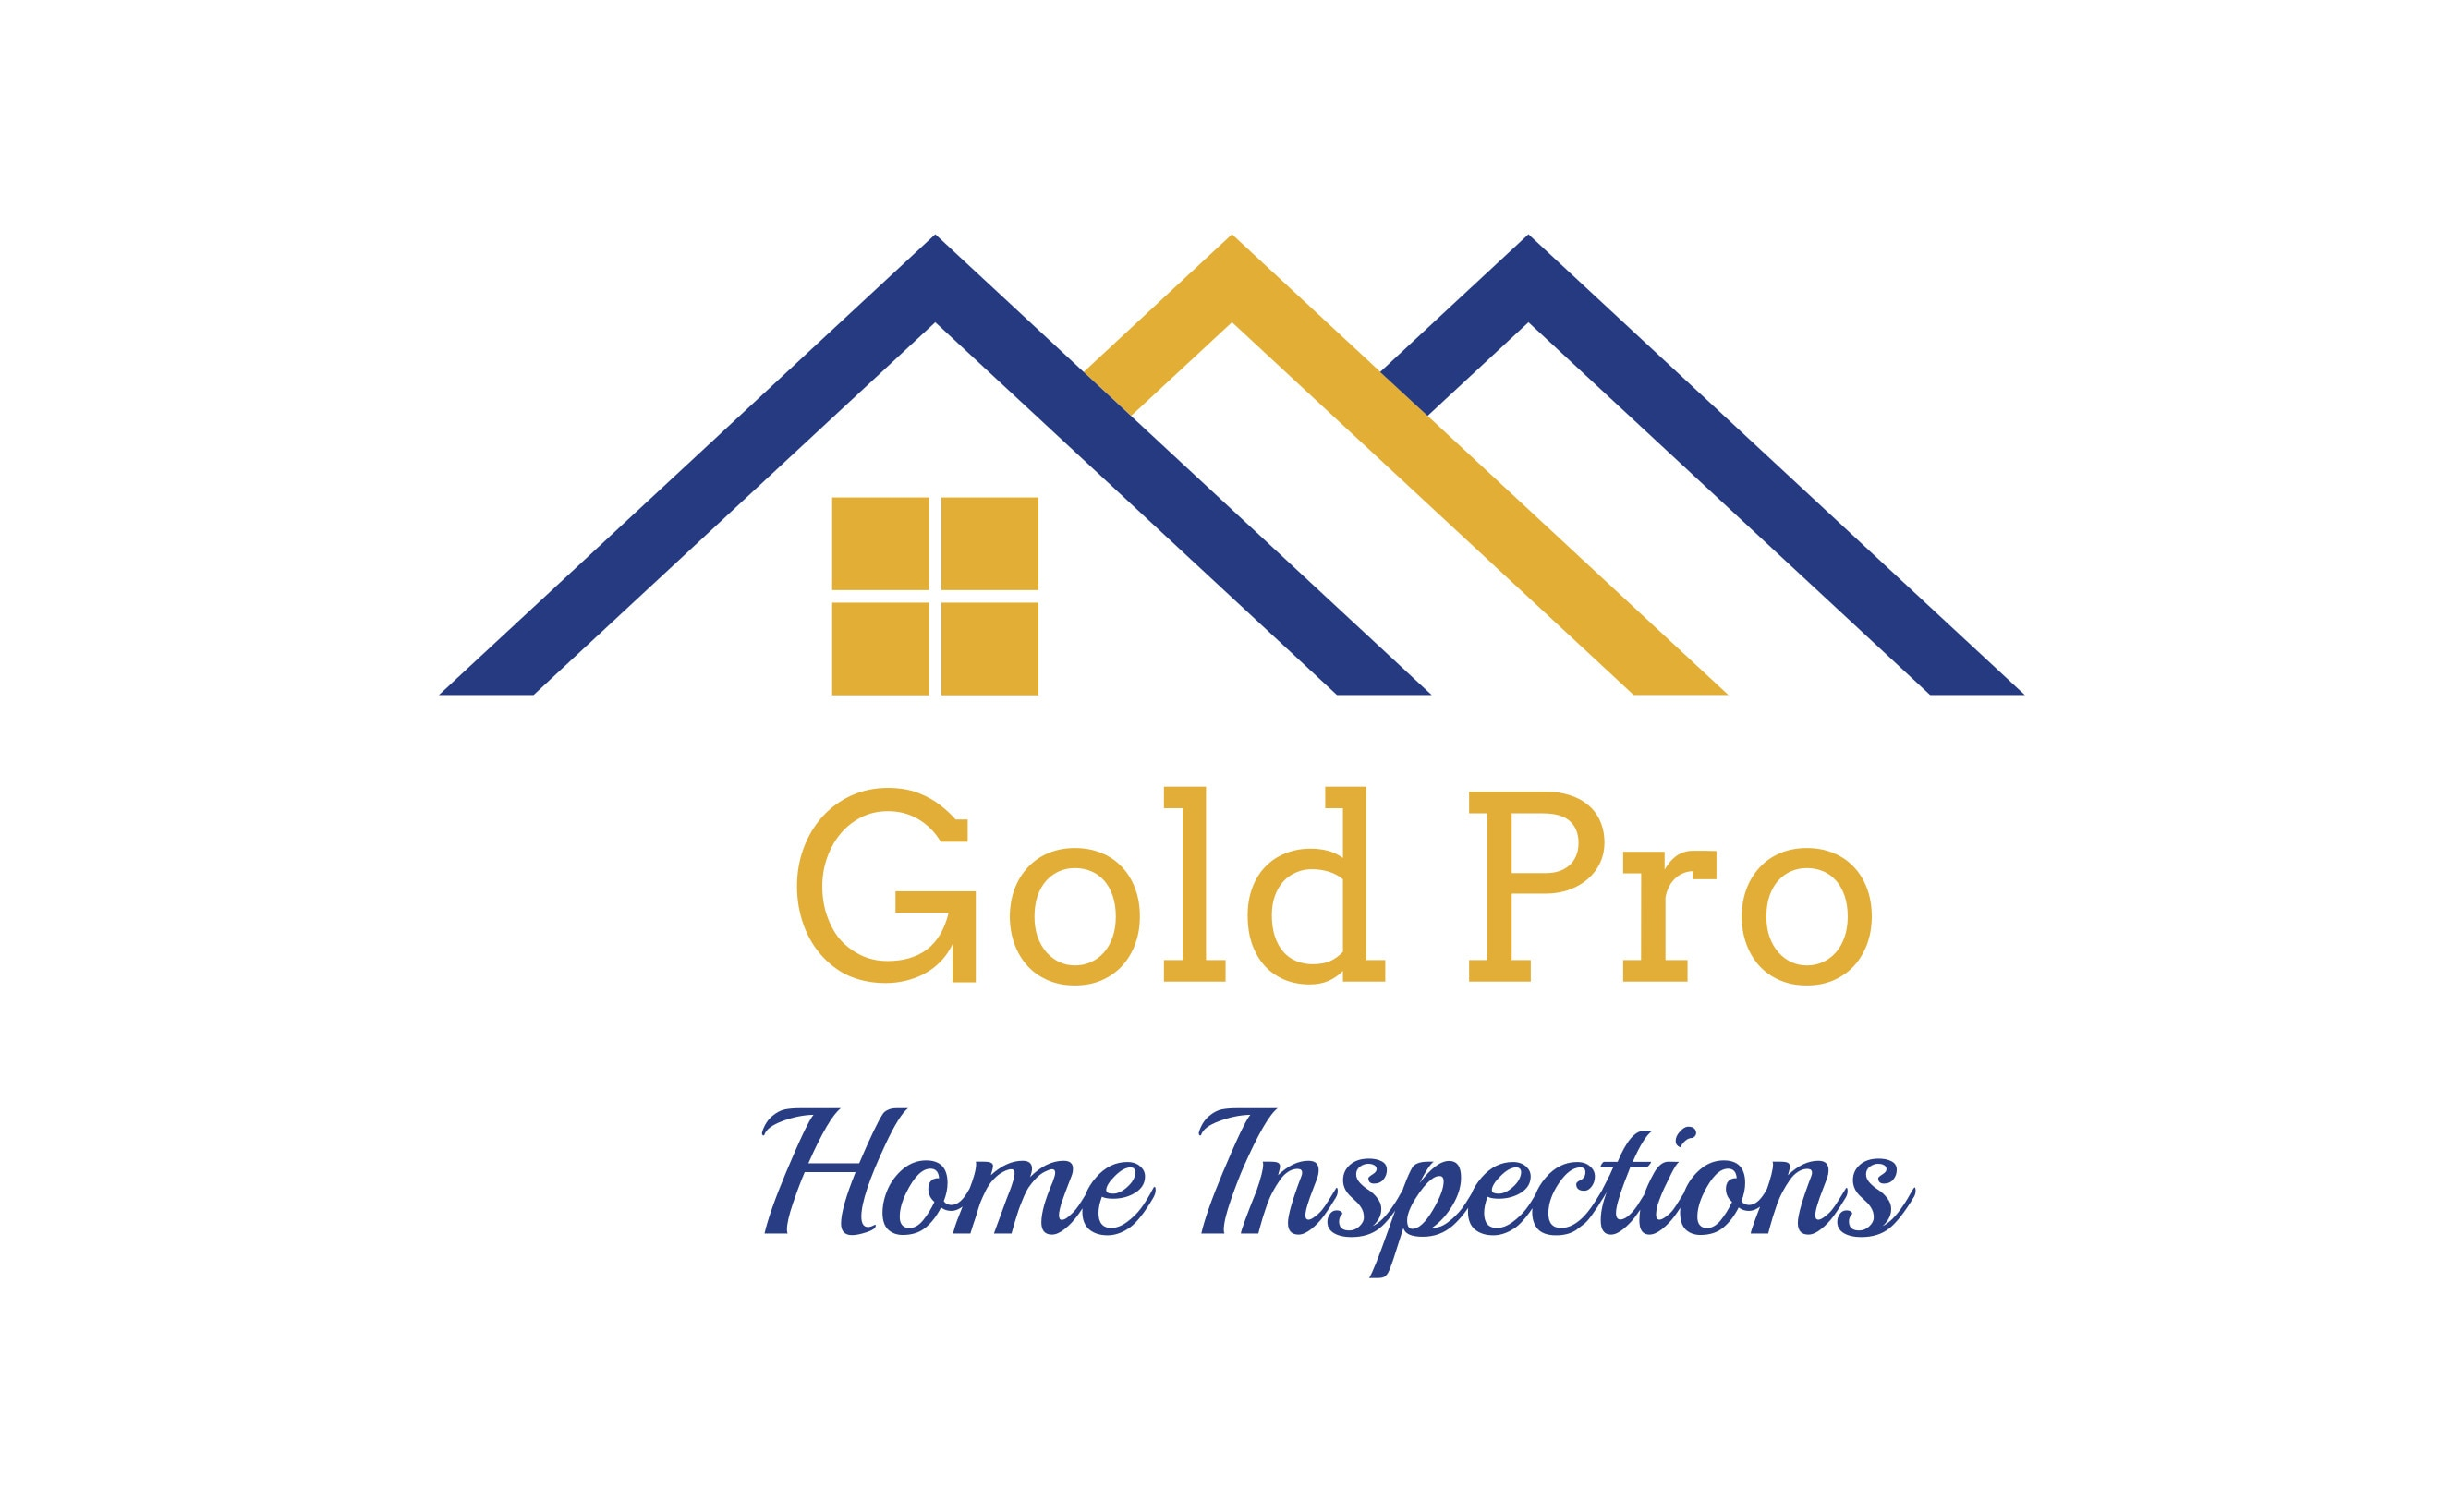 Gold Pro Home Inspections logo